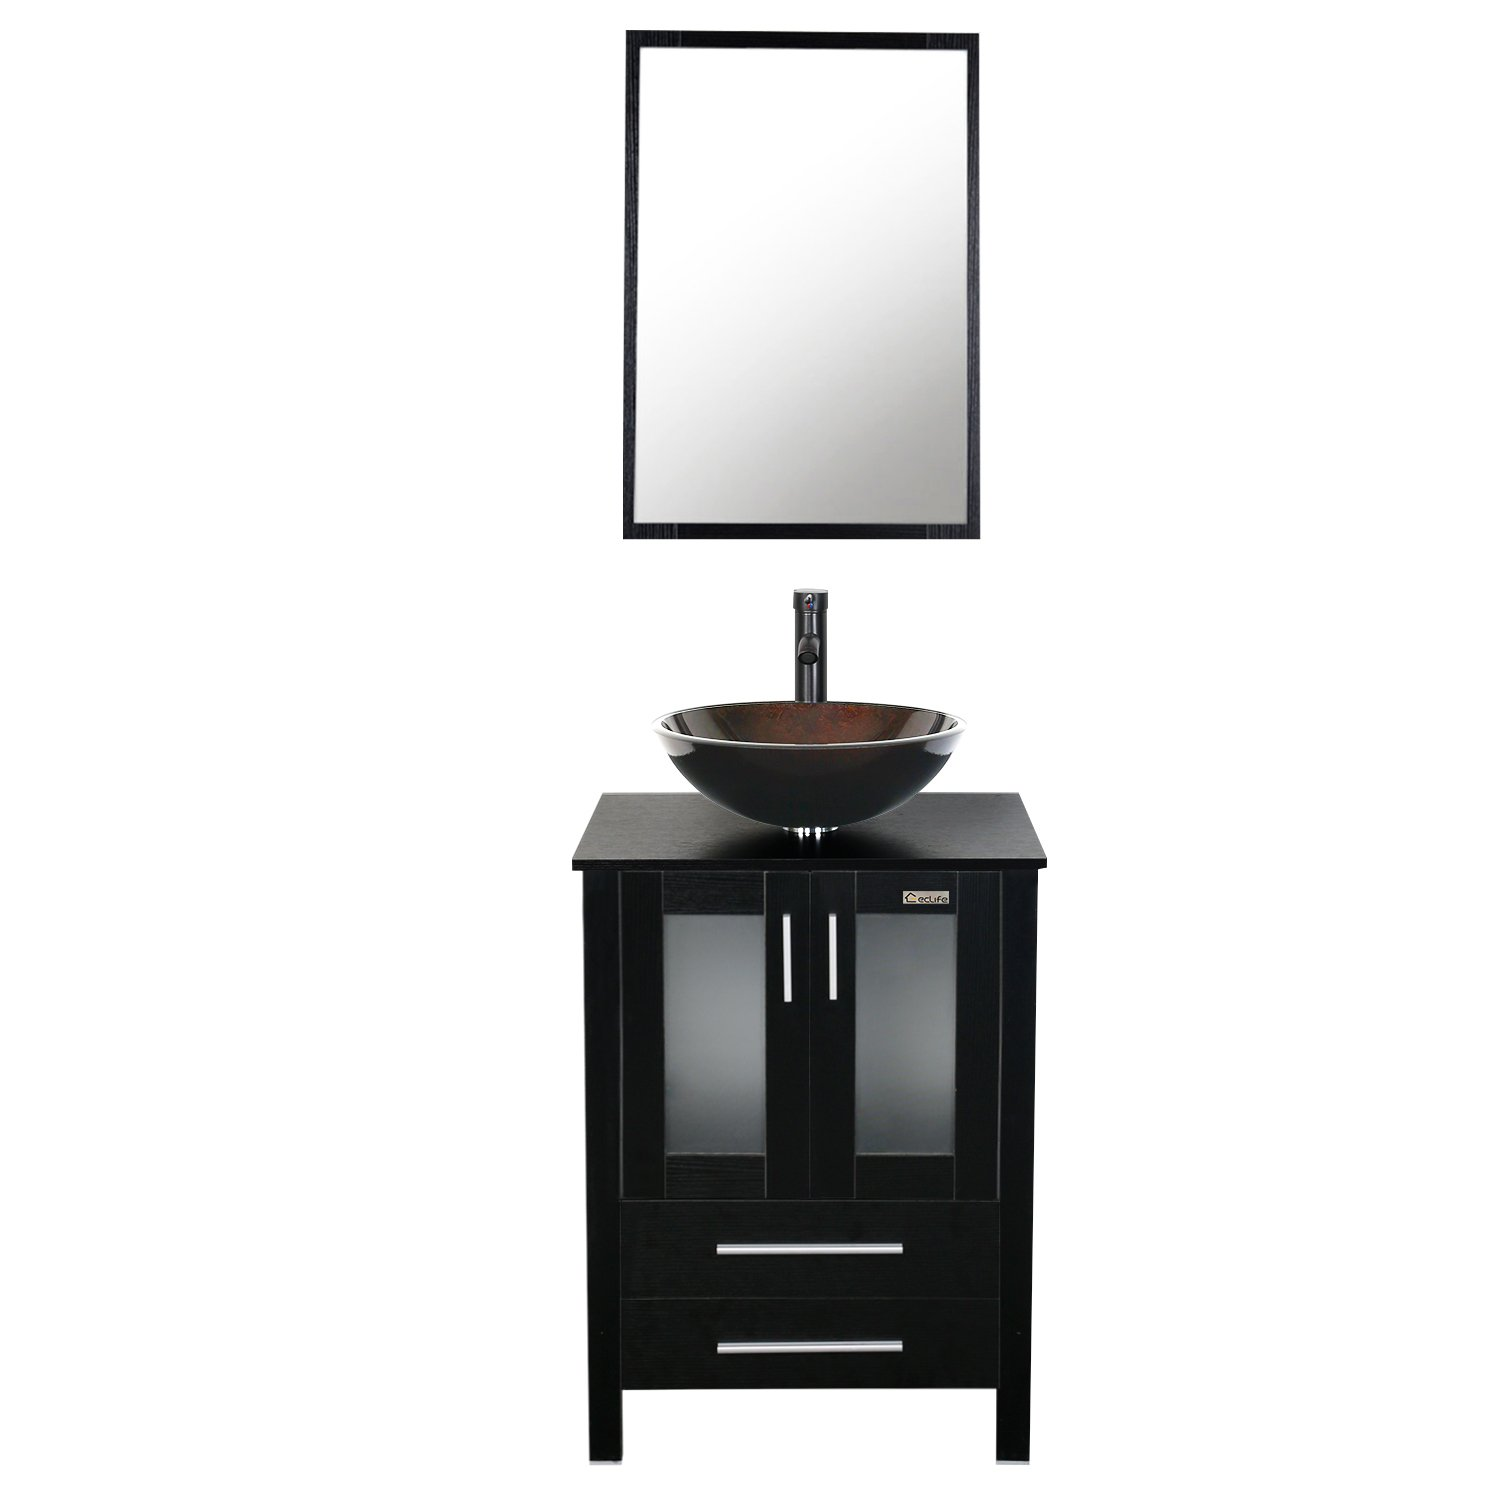 designs vessel signature roeding home vanity ideas vanities beautiful teak inspiration design decor with fancy creative hardware gray combos small light sinks bathroom sink